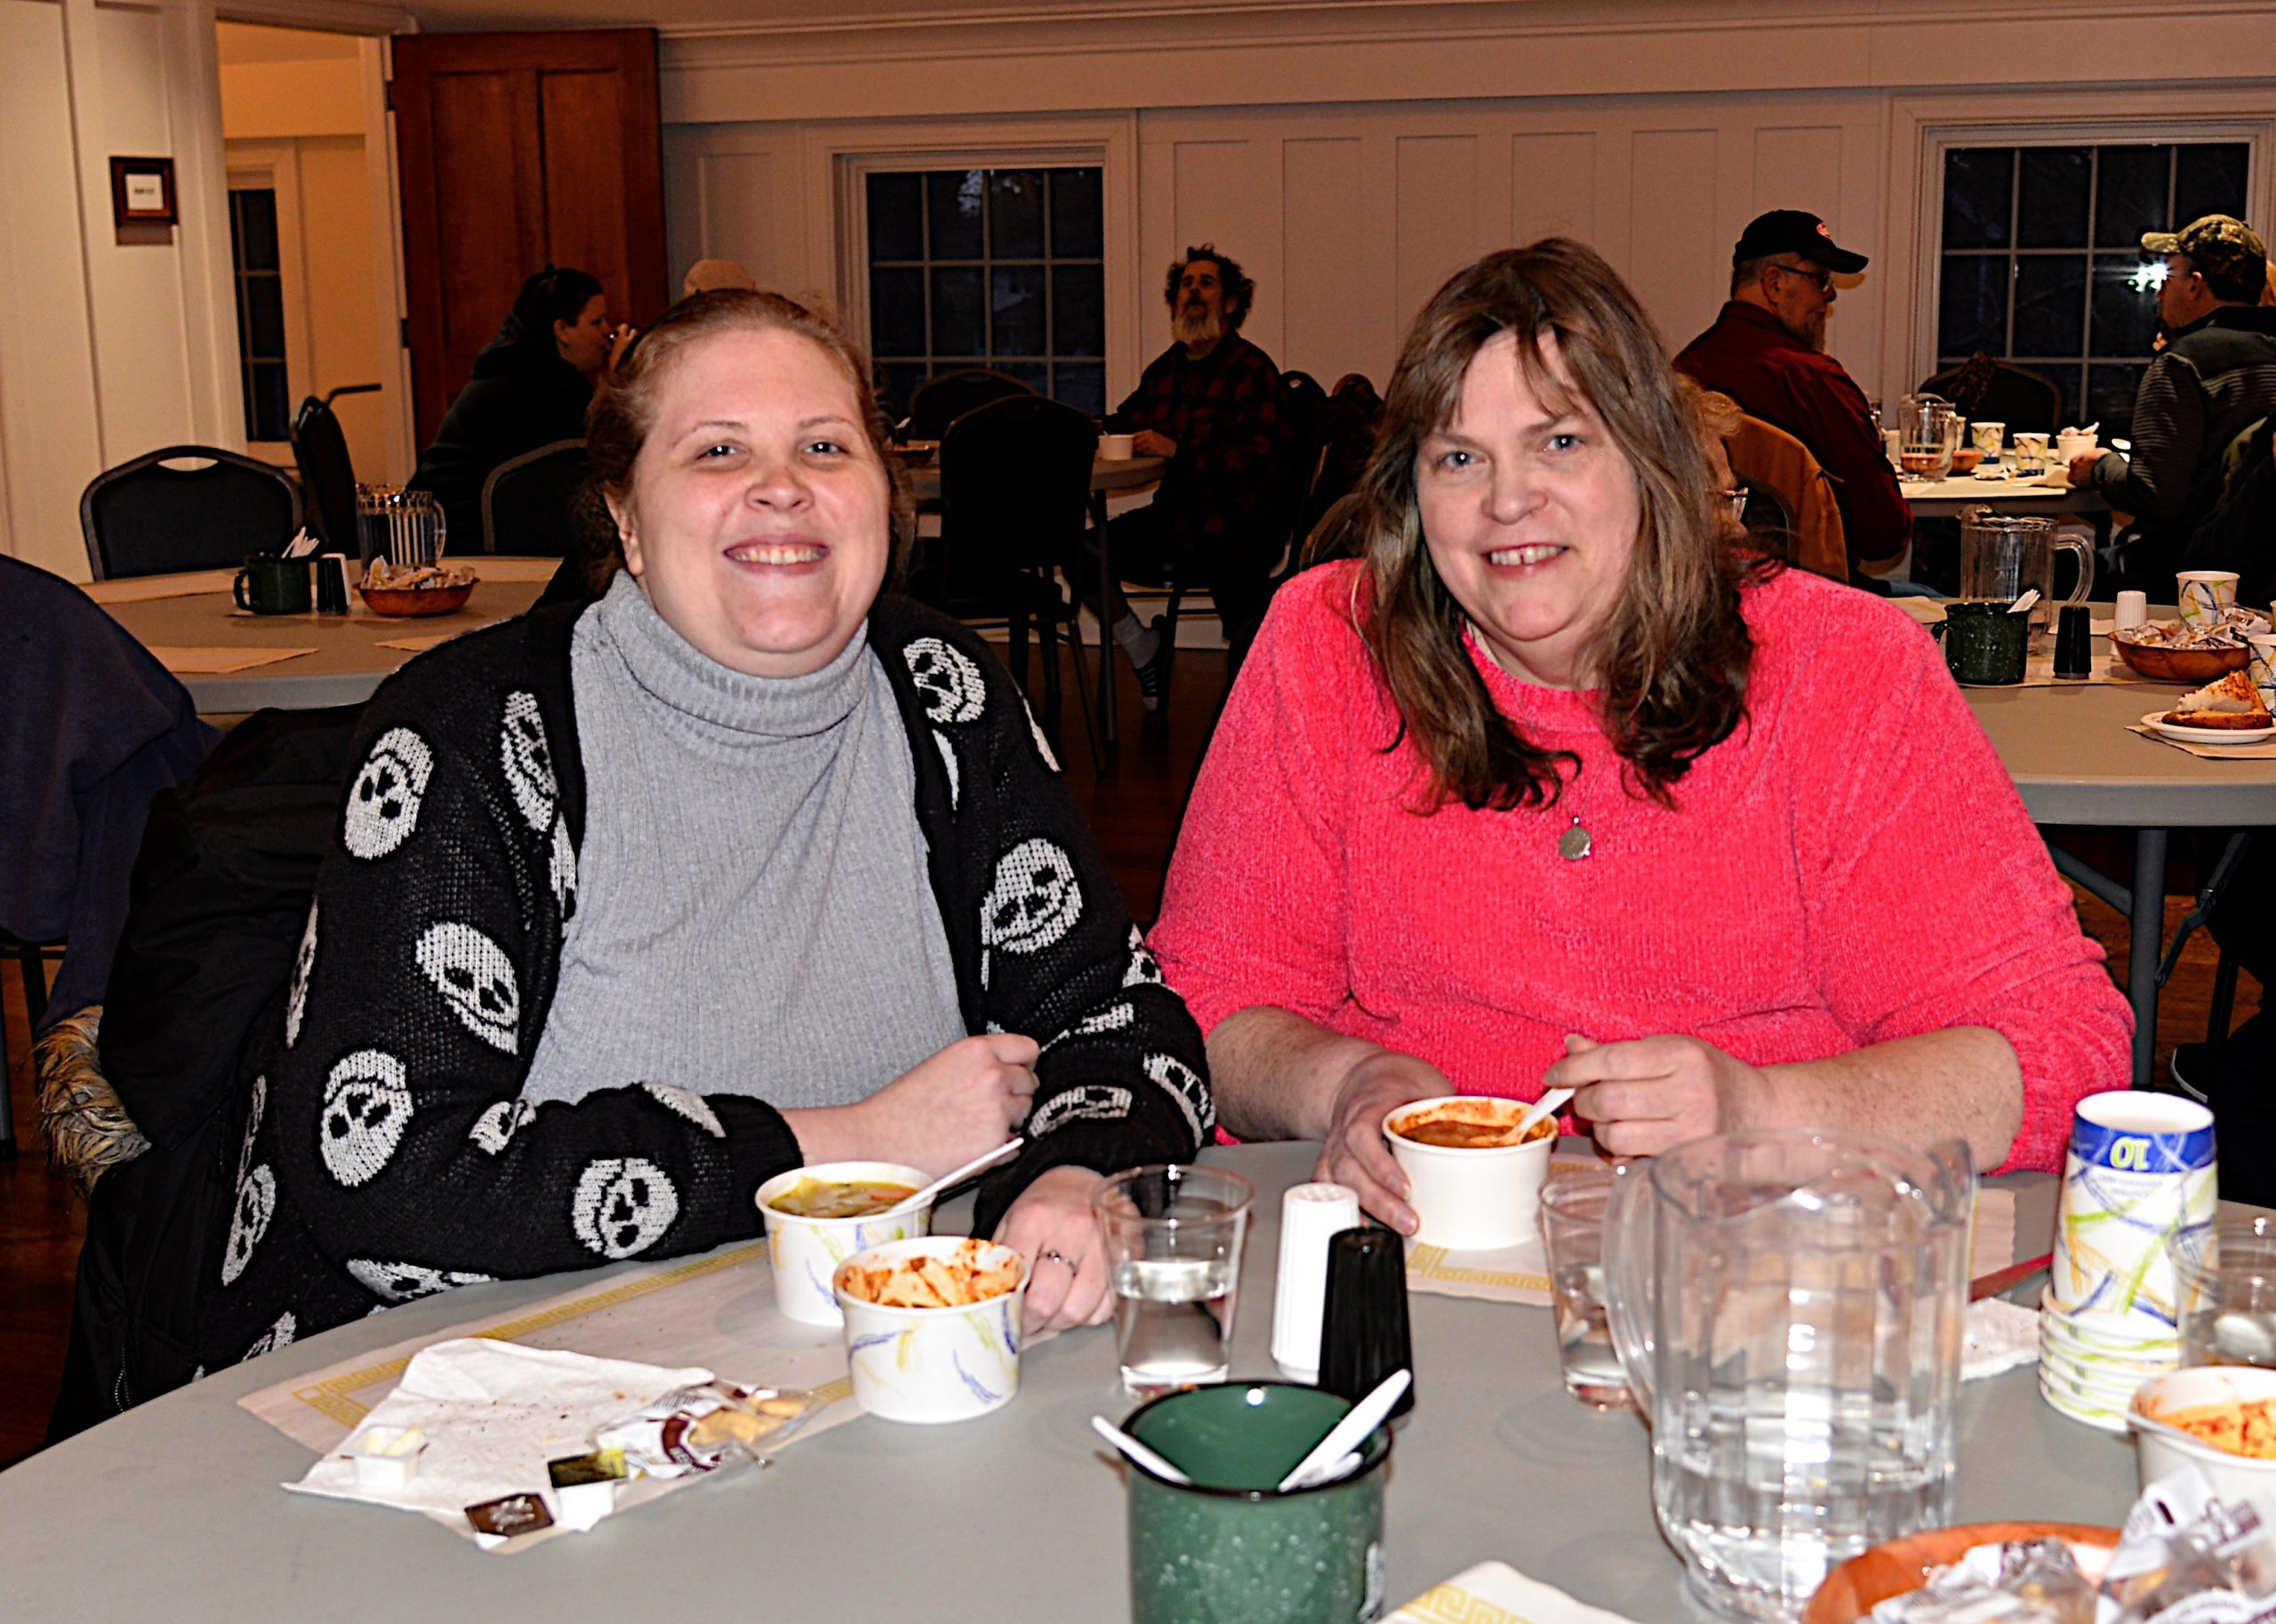 The deacons of the Amagansett Presbyterian Church hosted a Soup and Chili dinner on Saturday. Meredith and Dana Lester tried out the chili. KYRIL BROMLEY